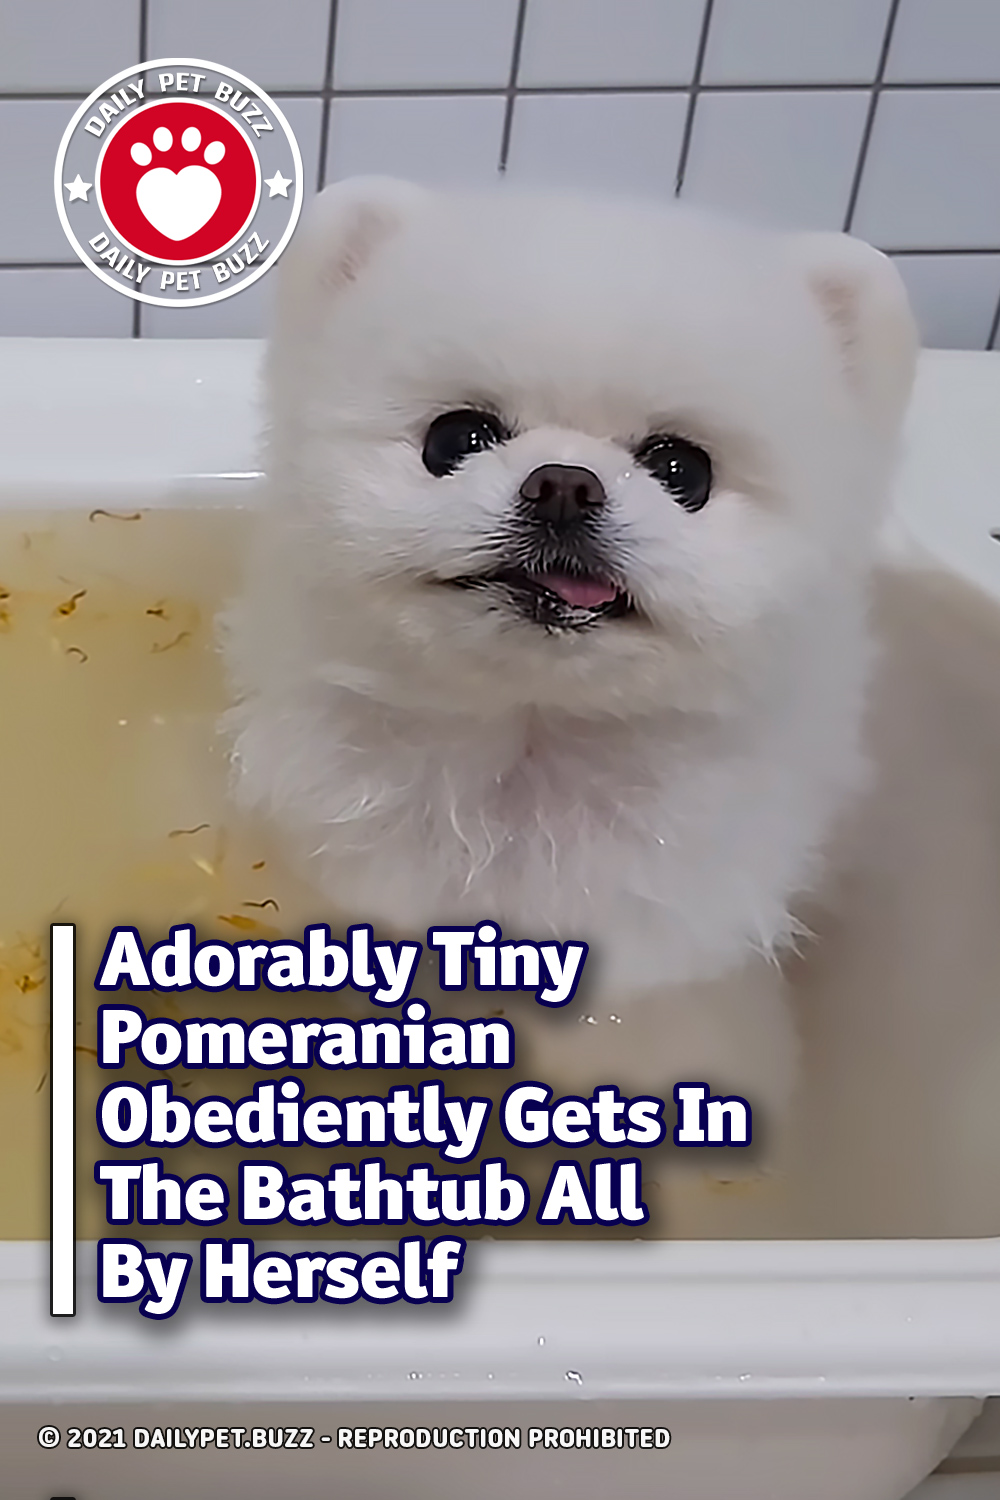 Adorably Tiny Pomeranian Obediently Gets In The Bathtub All By Herself